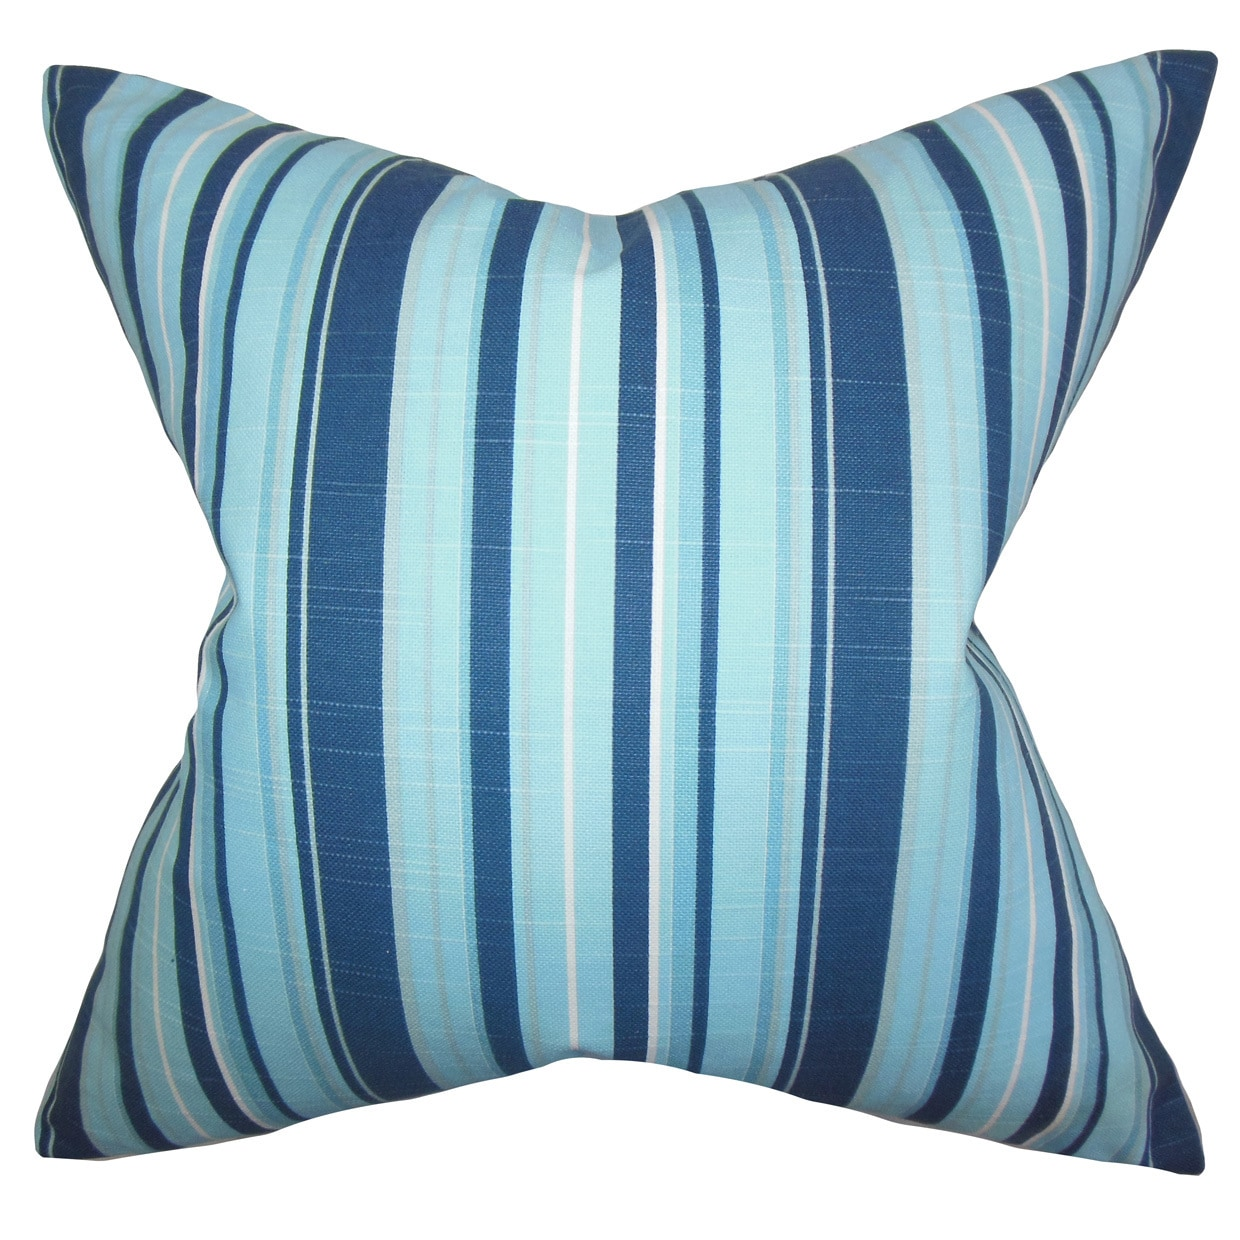 The Pillow Collection Gautier Stripes 22-inch Down Feather Throw Pillow Blue